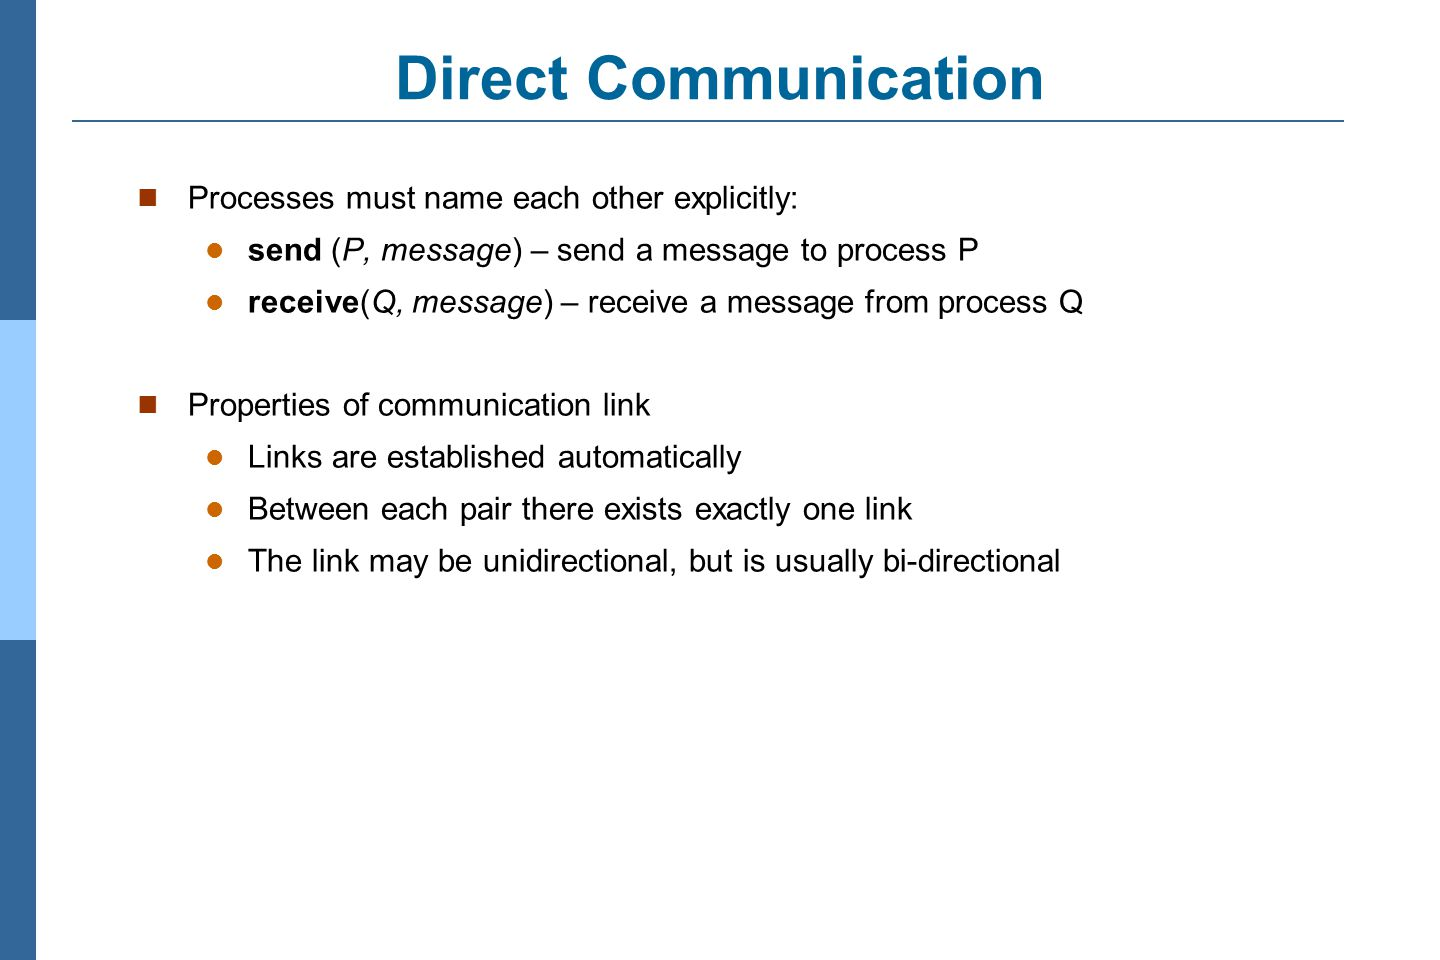 3.10 Silberschatz, Galvin and Gagne ©2011 Operating System Concepts Essentials – 8 th Edition Indirect Communication Messages are directed and received from mailboxes (also referred to as ports) Each mailbox has a unique id Processes can communicate only if they share a mailbox Properties of communication link Link established only if processes share a common mailbox A link may be associated with many processes Each pair of processes may share several communication links Link may be unidirectional or bi-directional